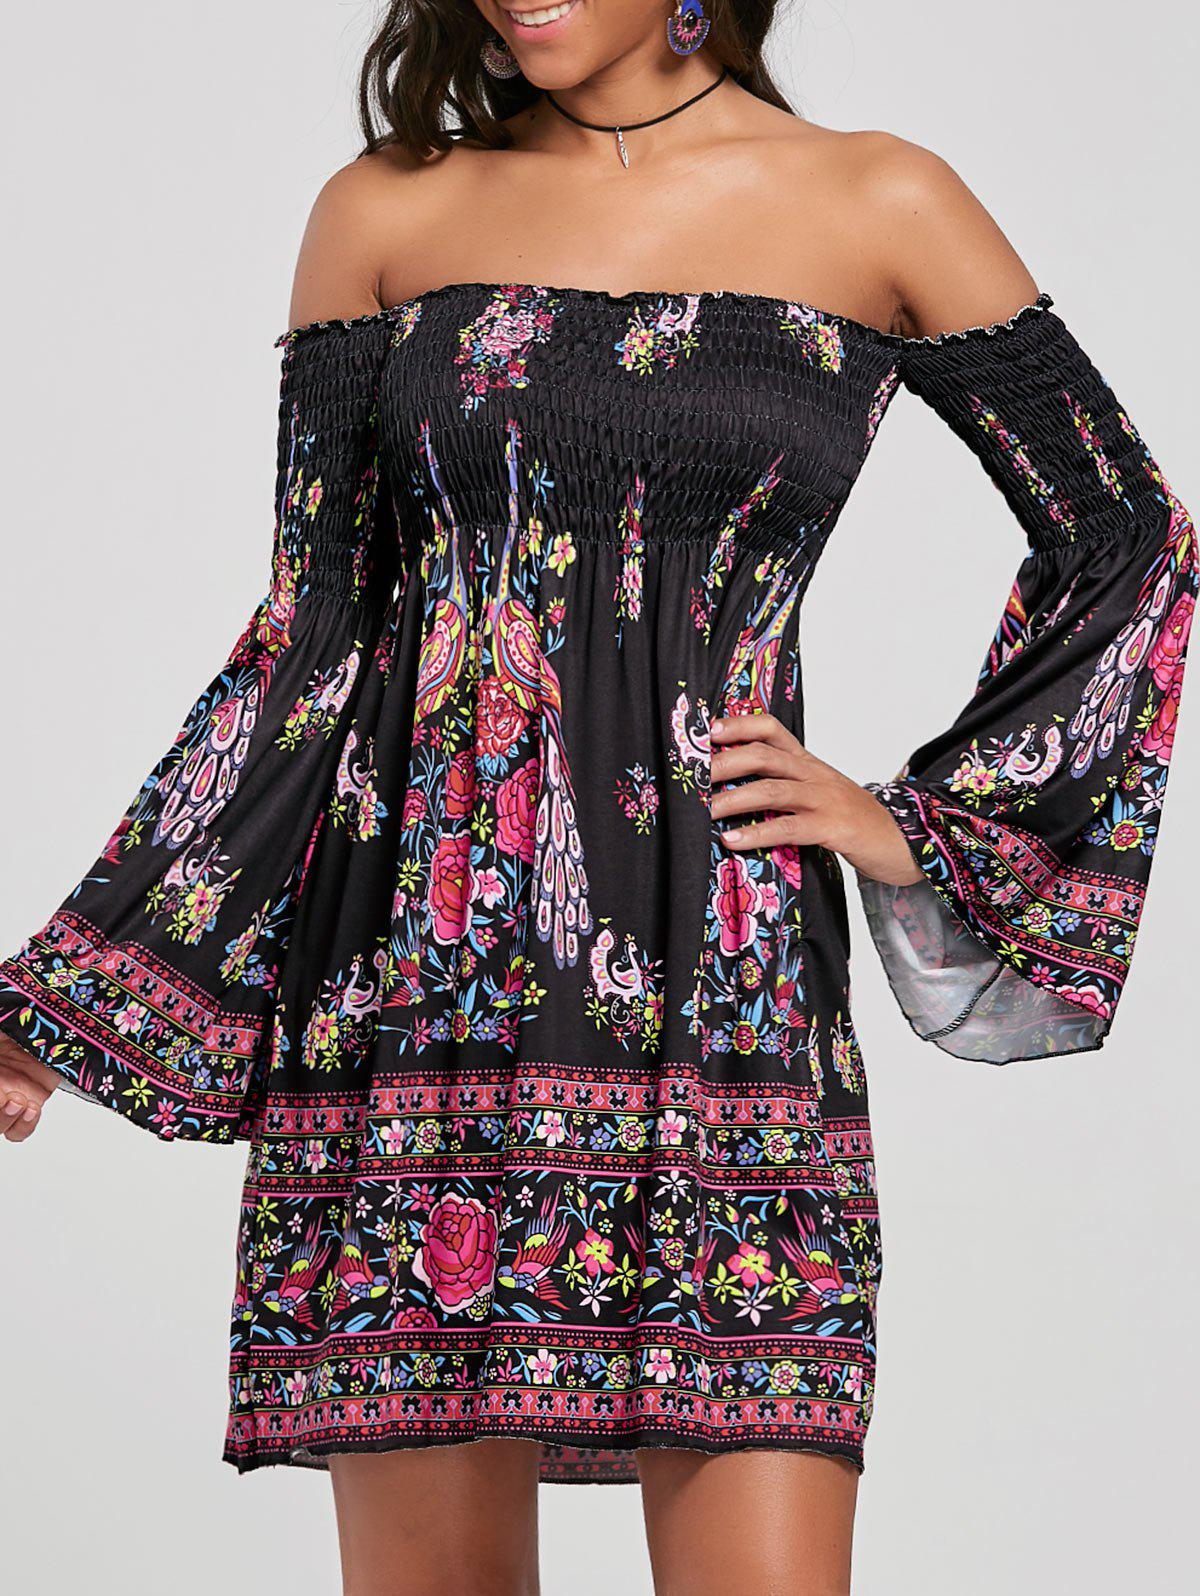 Off The Shoulder Flare Sleeve Bohemian DressWOMEN<br><br>Size: XL; Color: BLACK; Style: Bohemian; Material: Cotton Blend,Polyester; Silhouette: A-Line; Dress Type: African Dress,Tribal Dress; Dresses Length: Mini; Neckline: Off The Shoulder; Sleeve Type: Flare Sleeve; Sleeve Length: Long Sleeves; Waist: Empire; Pattern Type: Floral,Print; With Belt: No; Season: Fall,Spring; Weight: 0.3500kg; Package Contents: 1 x Dress;